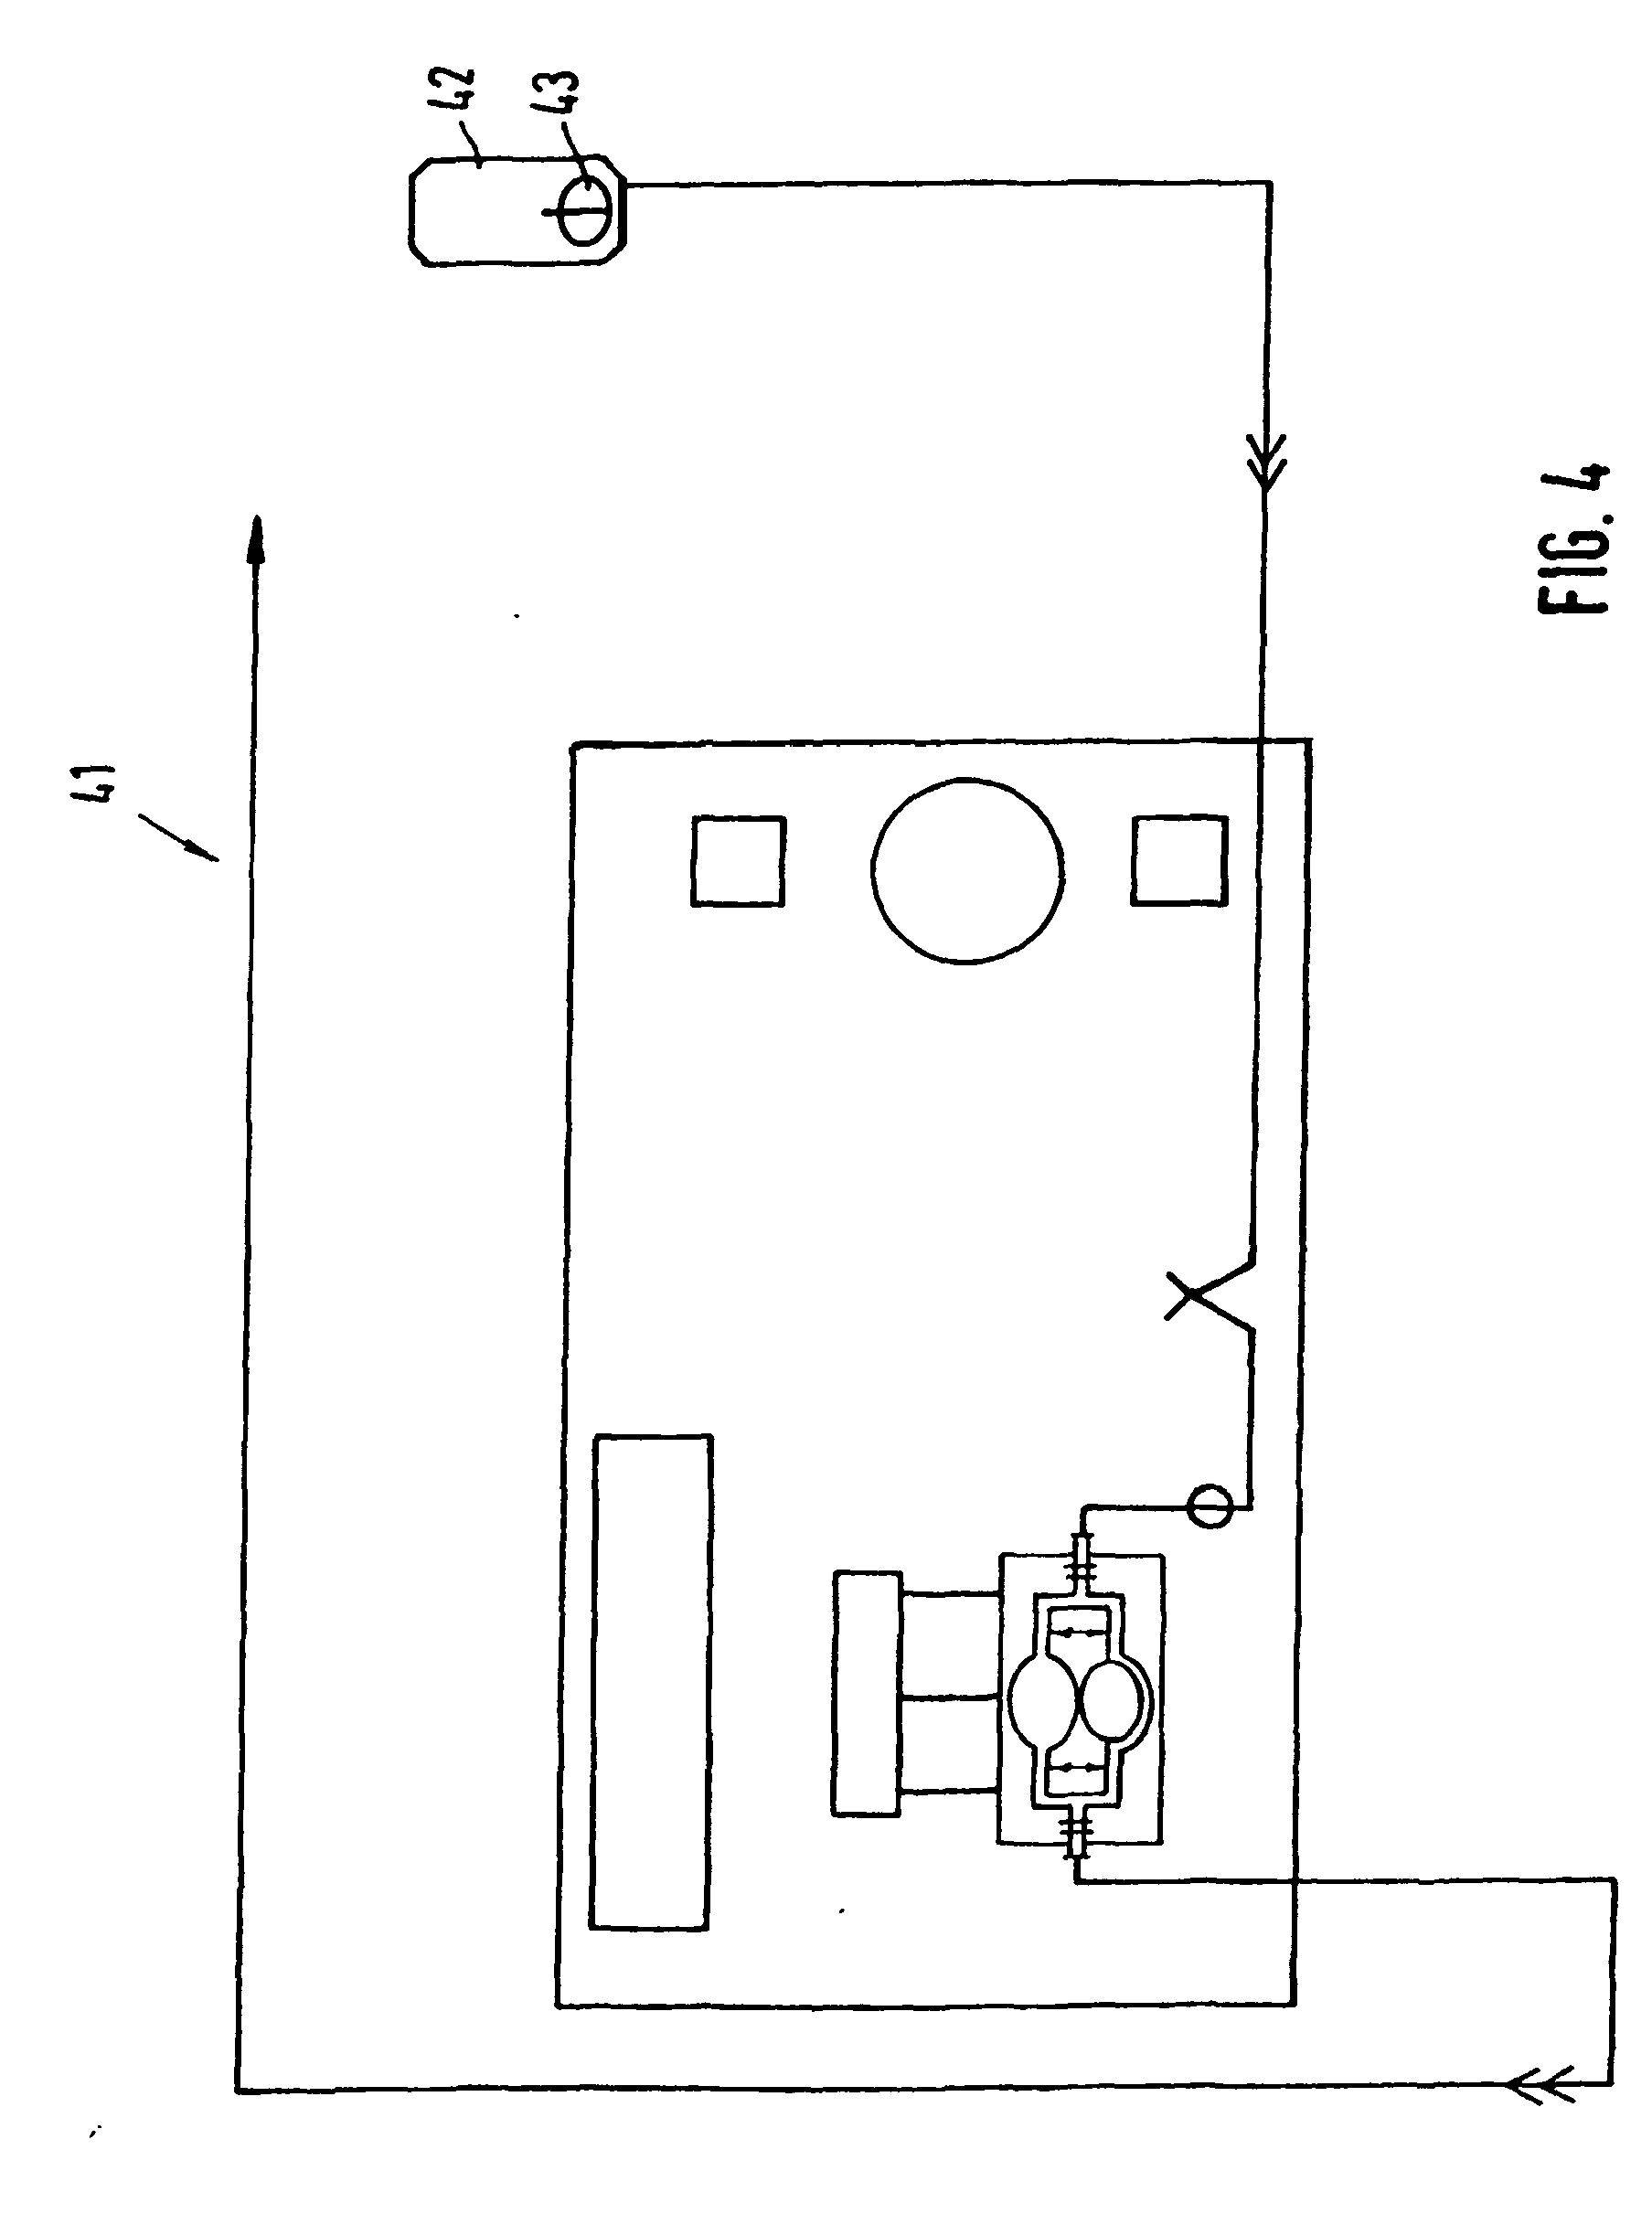 Patent drawing for Interieur corps humain